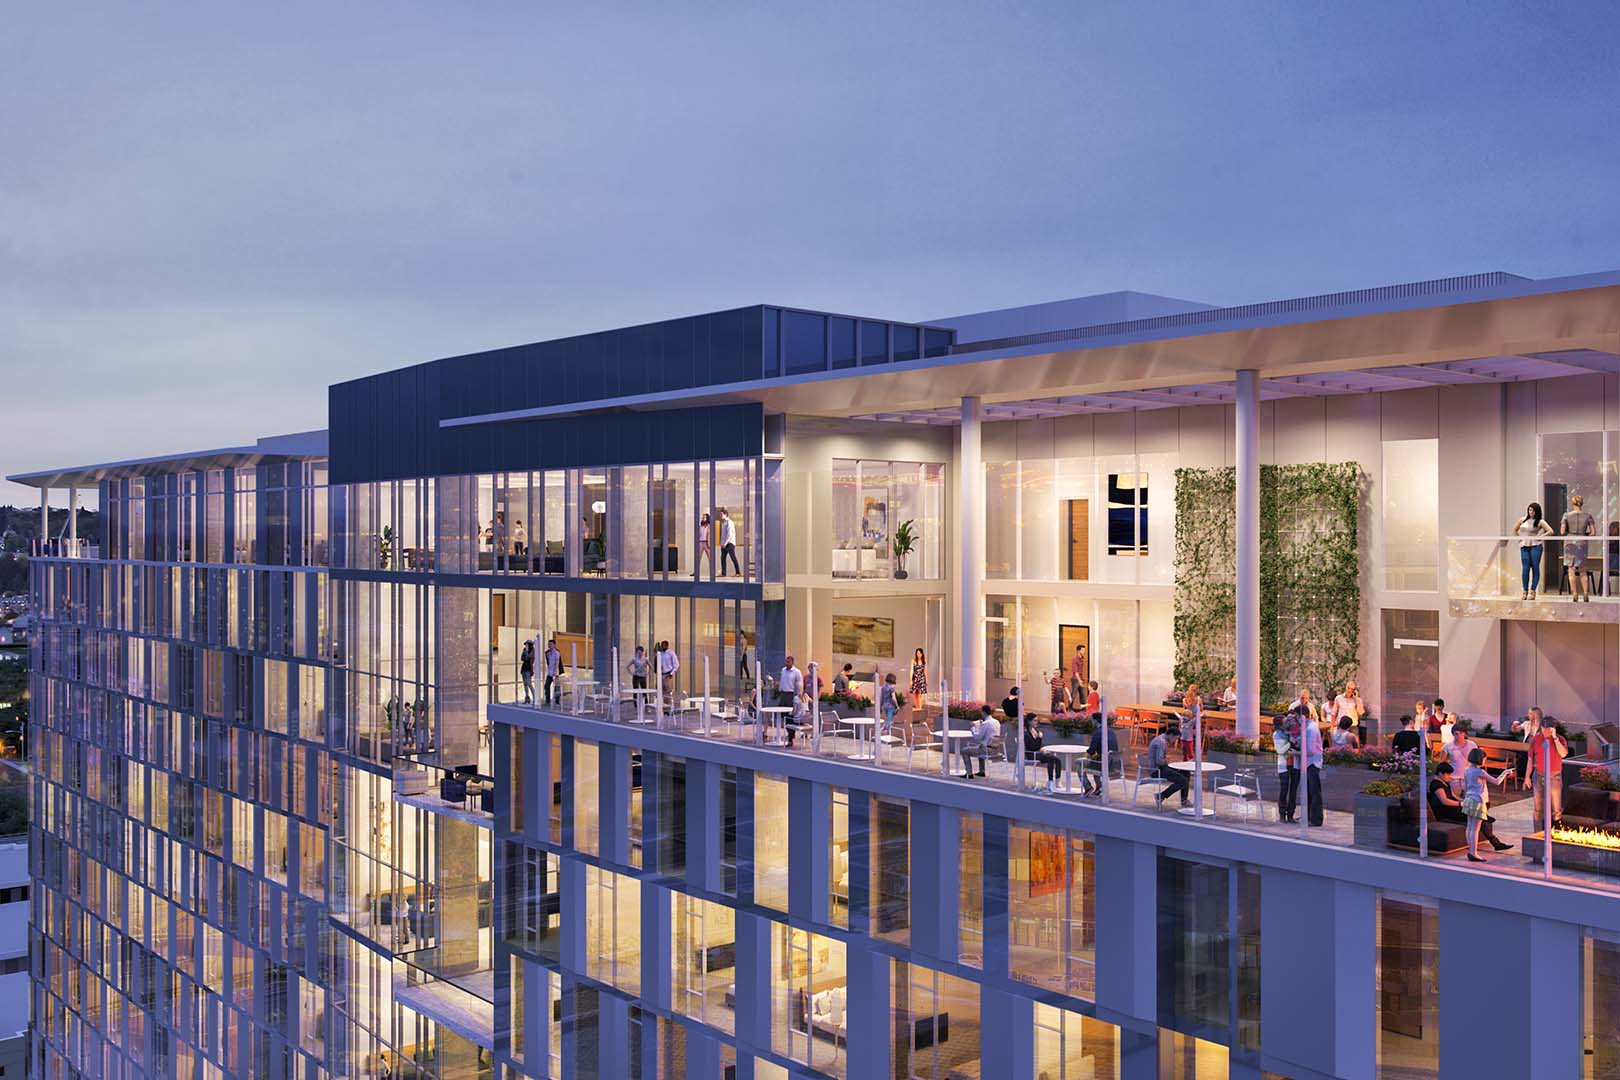 Architectural rendering of the top floors of a glassy condo building. People sit outside on a large patio.